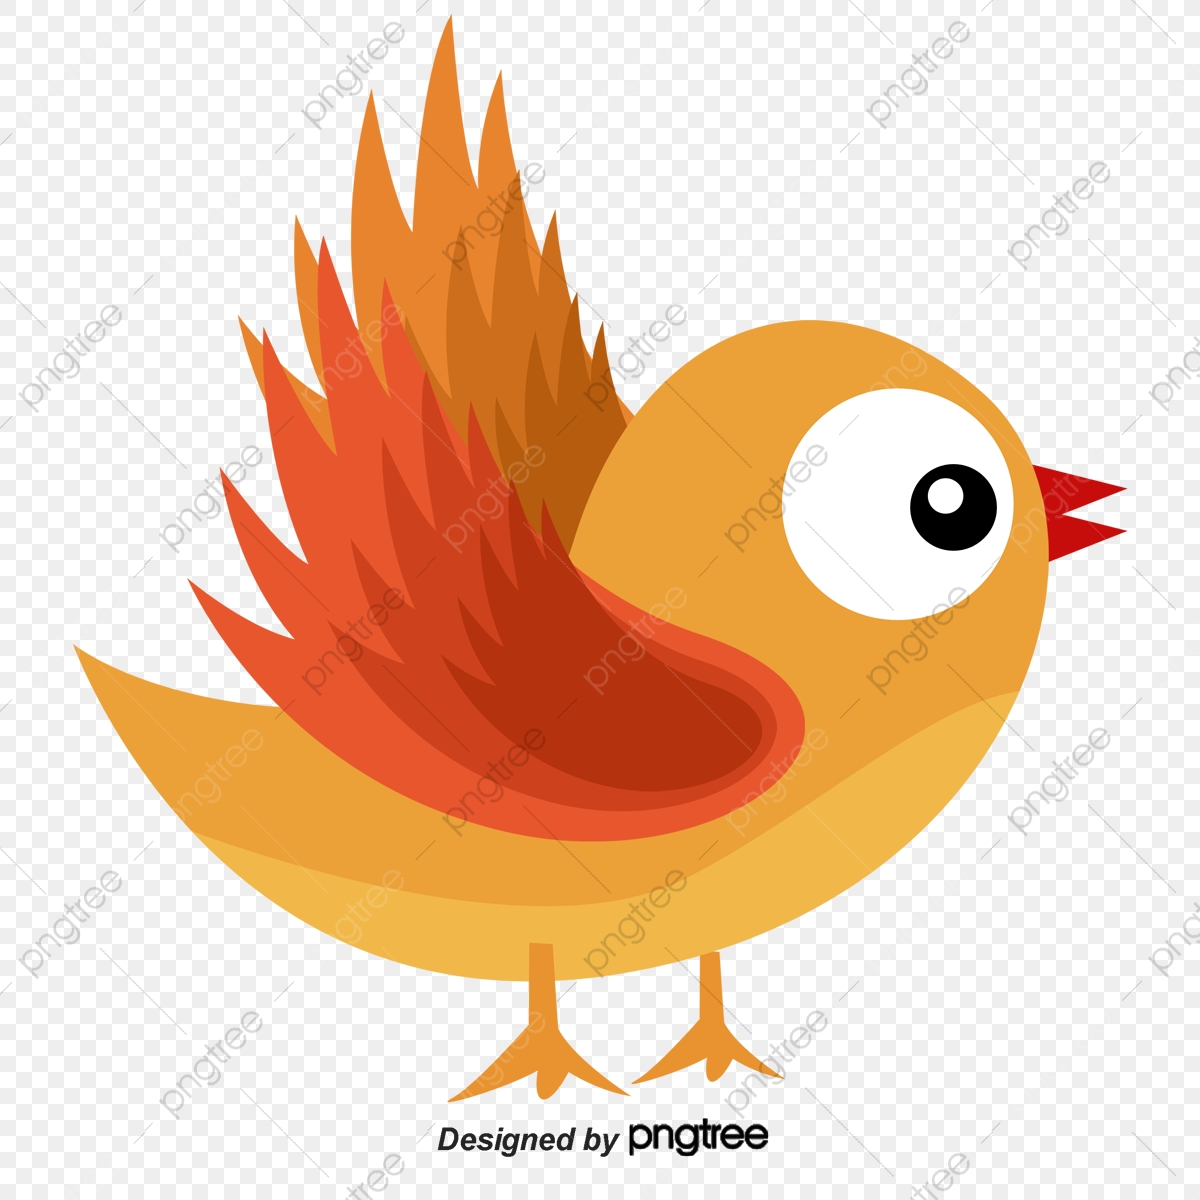 Cute Orange Flying Bird Cartoon Hand Painted Birdie Magpie Png Transparent Clipart Image And Psd File For Free Download